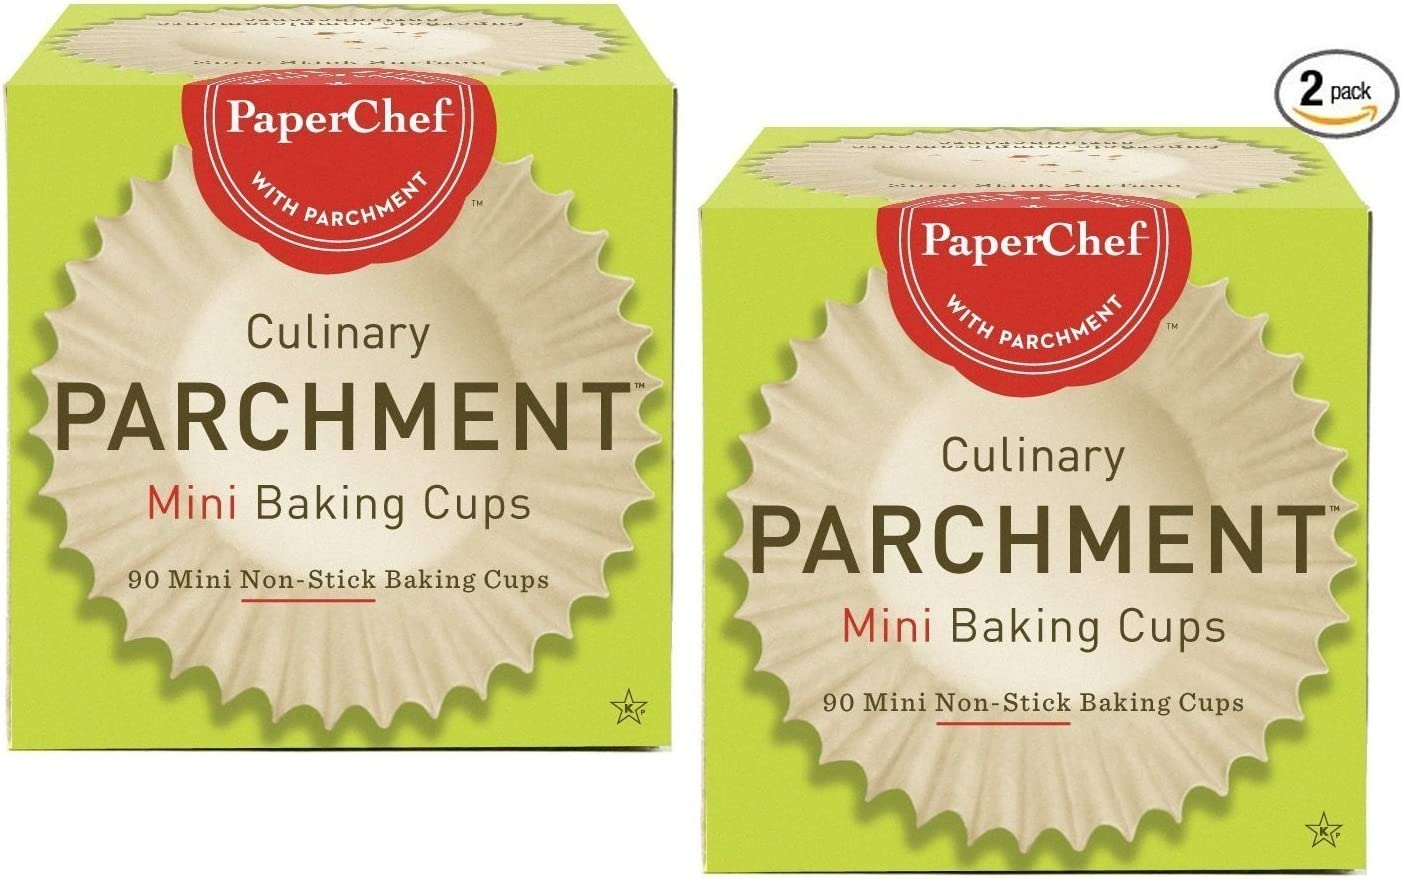 (2 Pack) Mini Paper Cupcake Liners / Baking Cups, 90-ct/Box 71rJRYCp23L